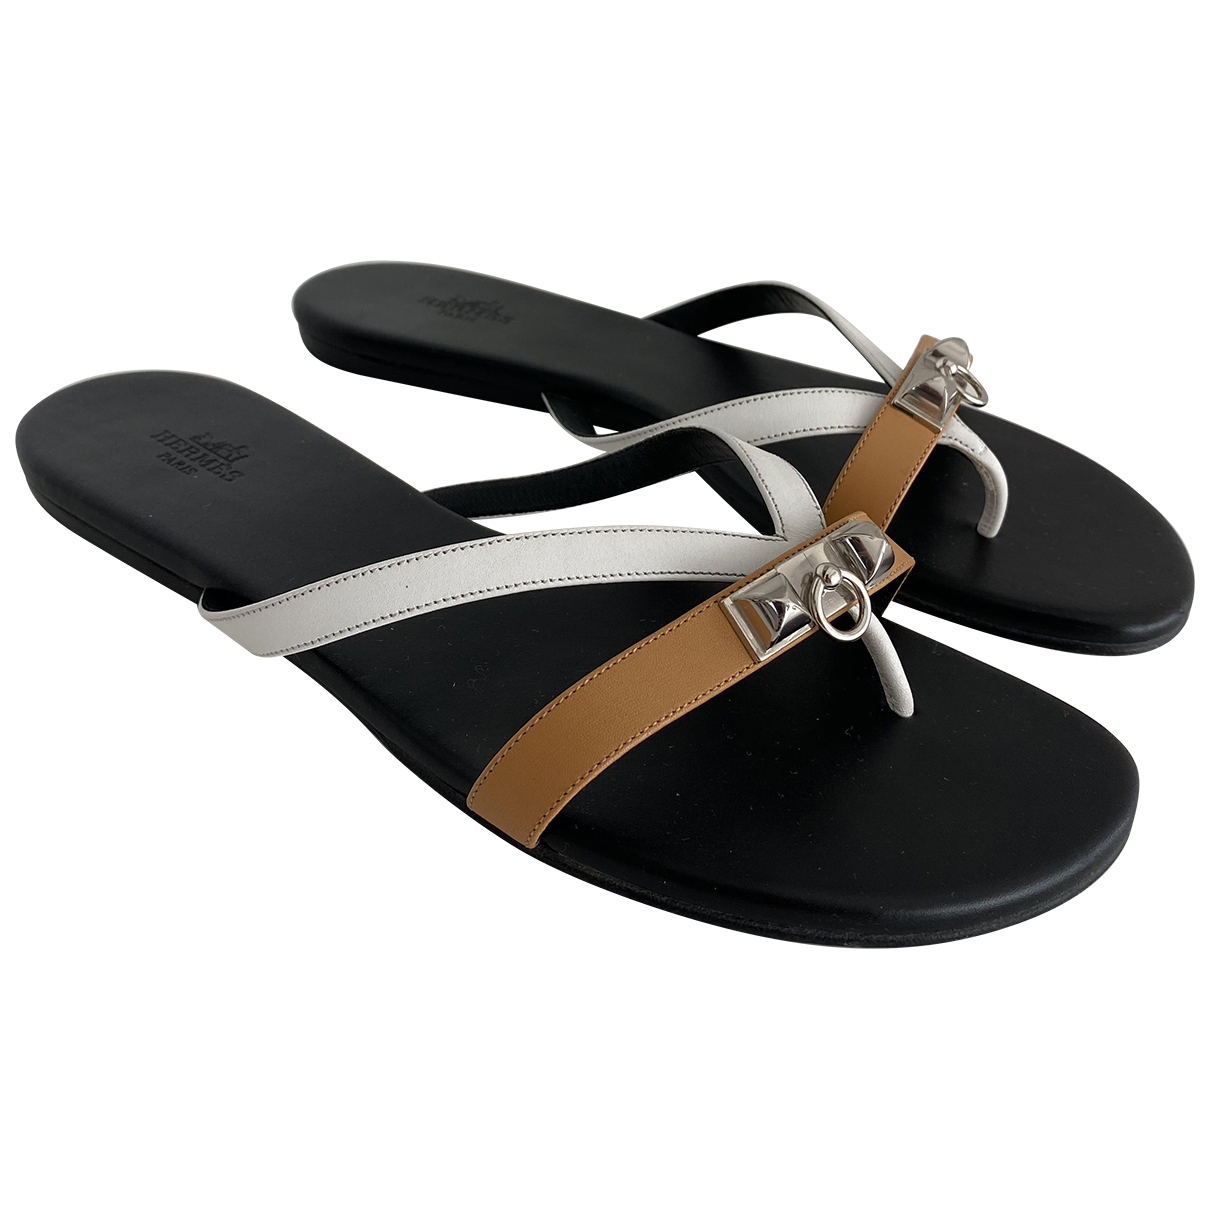 Hermès N Multicolour Leather Sandals for Women 38.5 EU